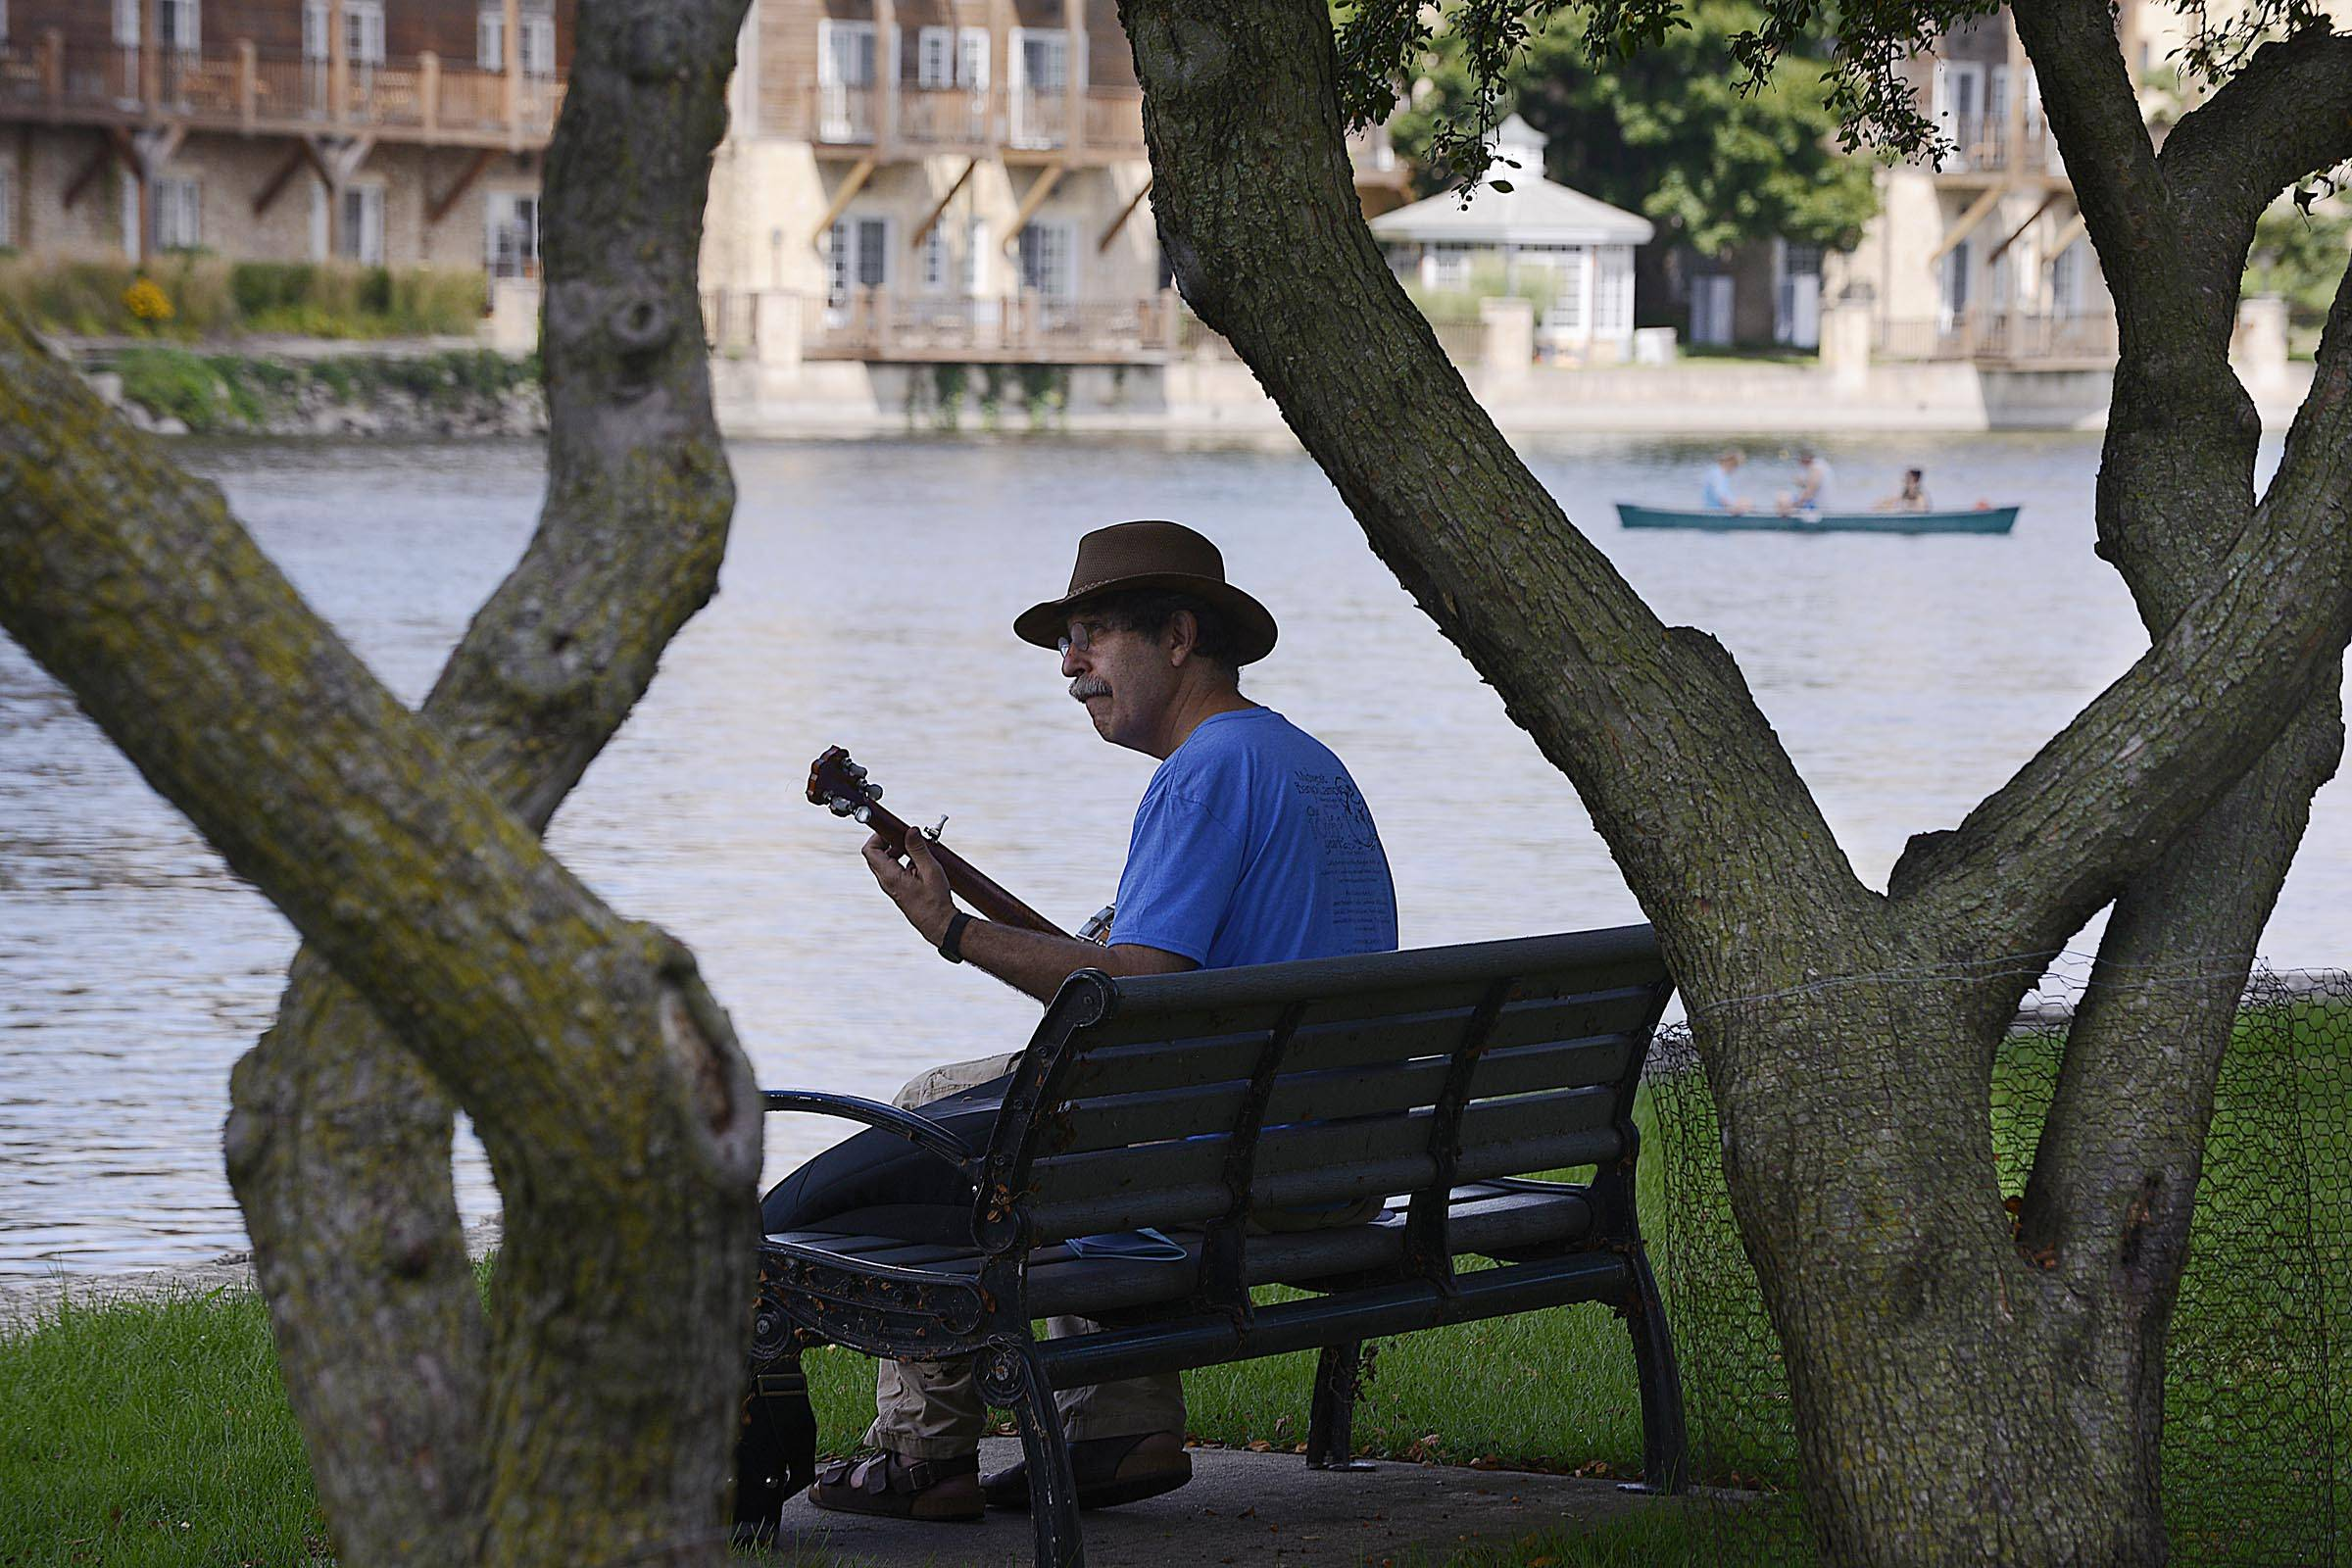 Ken Perlman, of Boston, plays his five-string banjo on the bank of the Fox River before performing for the crowd Sunday at the Fox Valley Folk Festival at Island Park in Geneva.